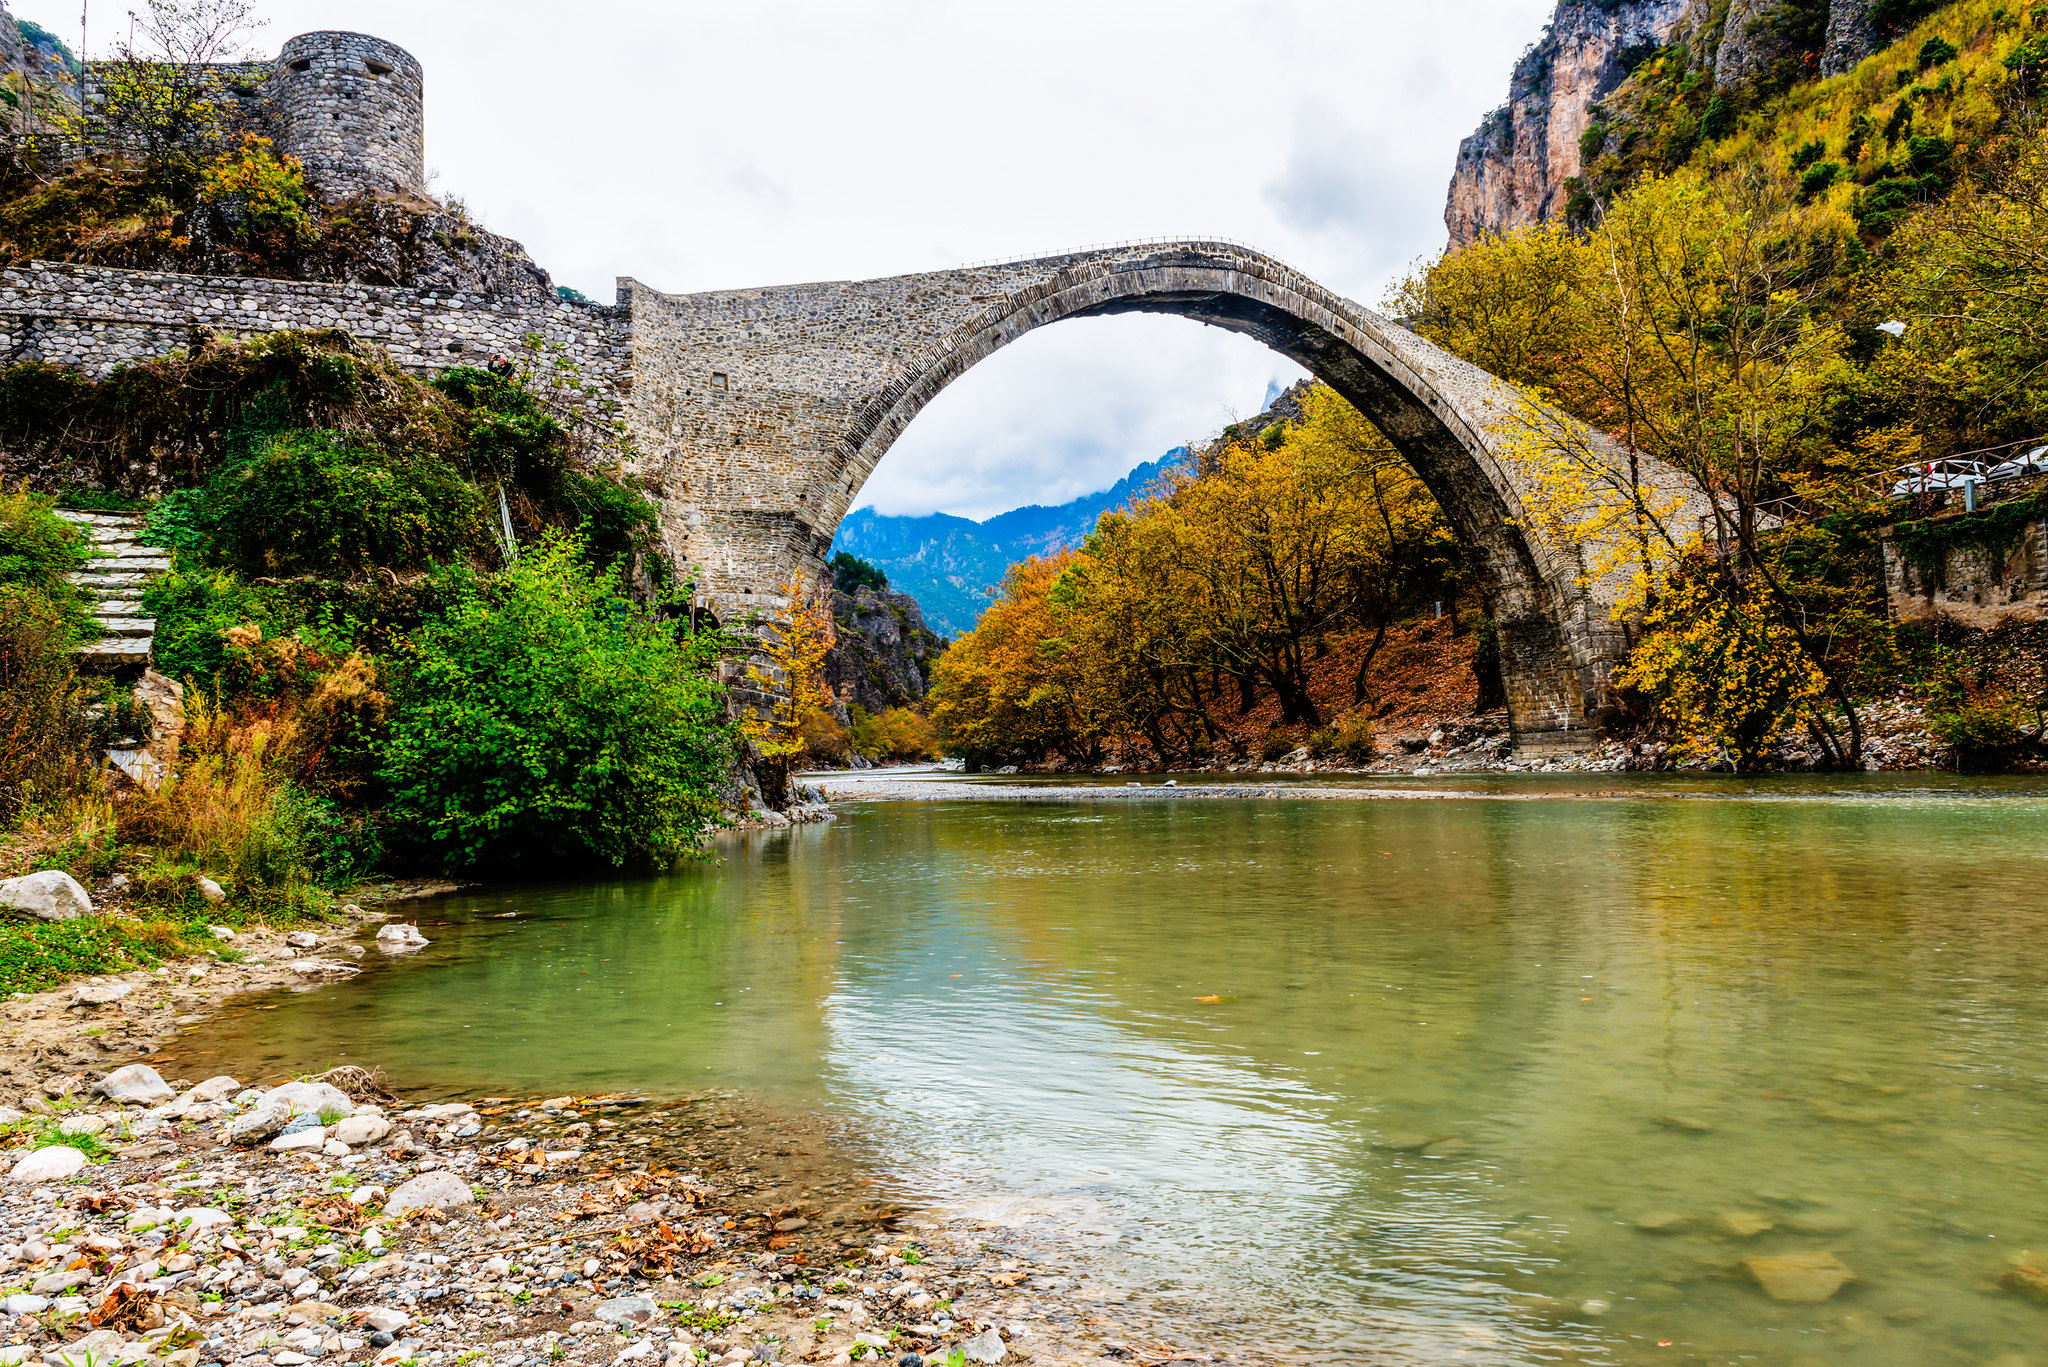 The Bridge at Konitsa